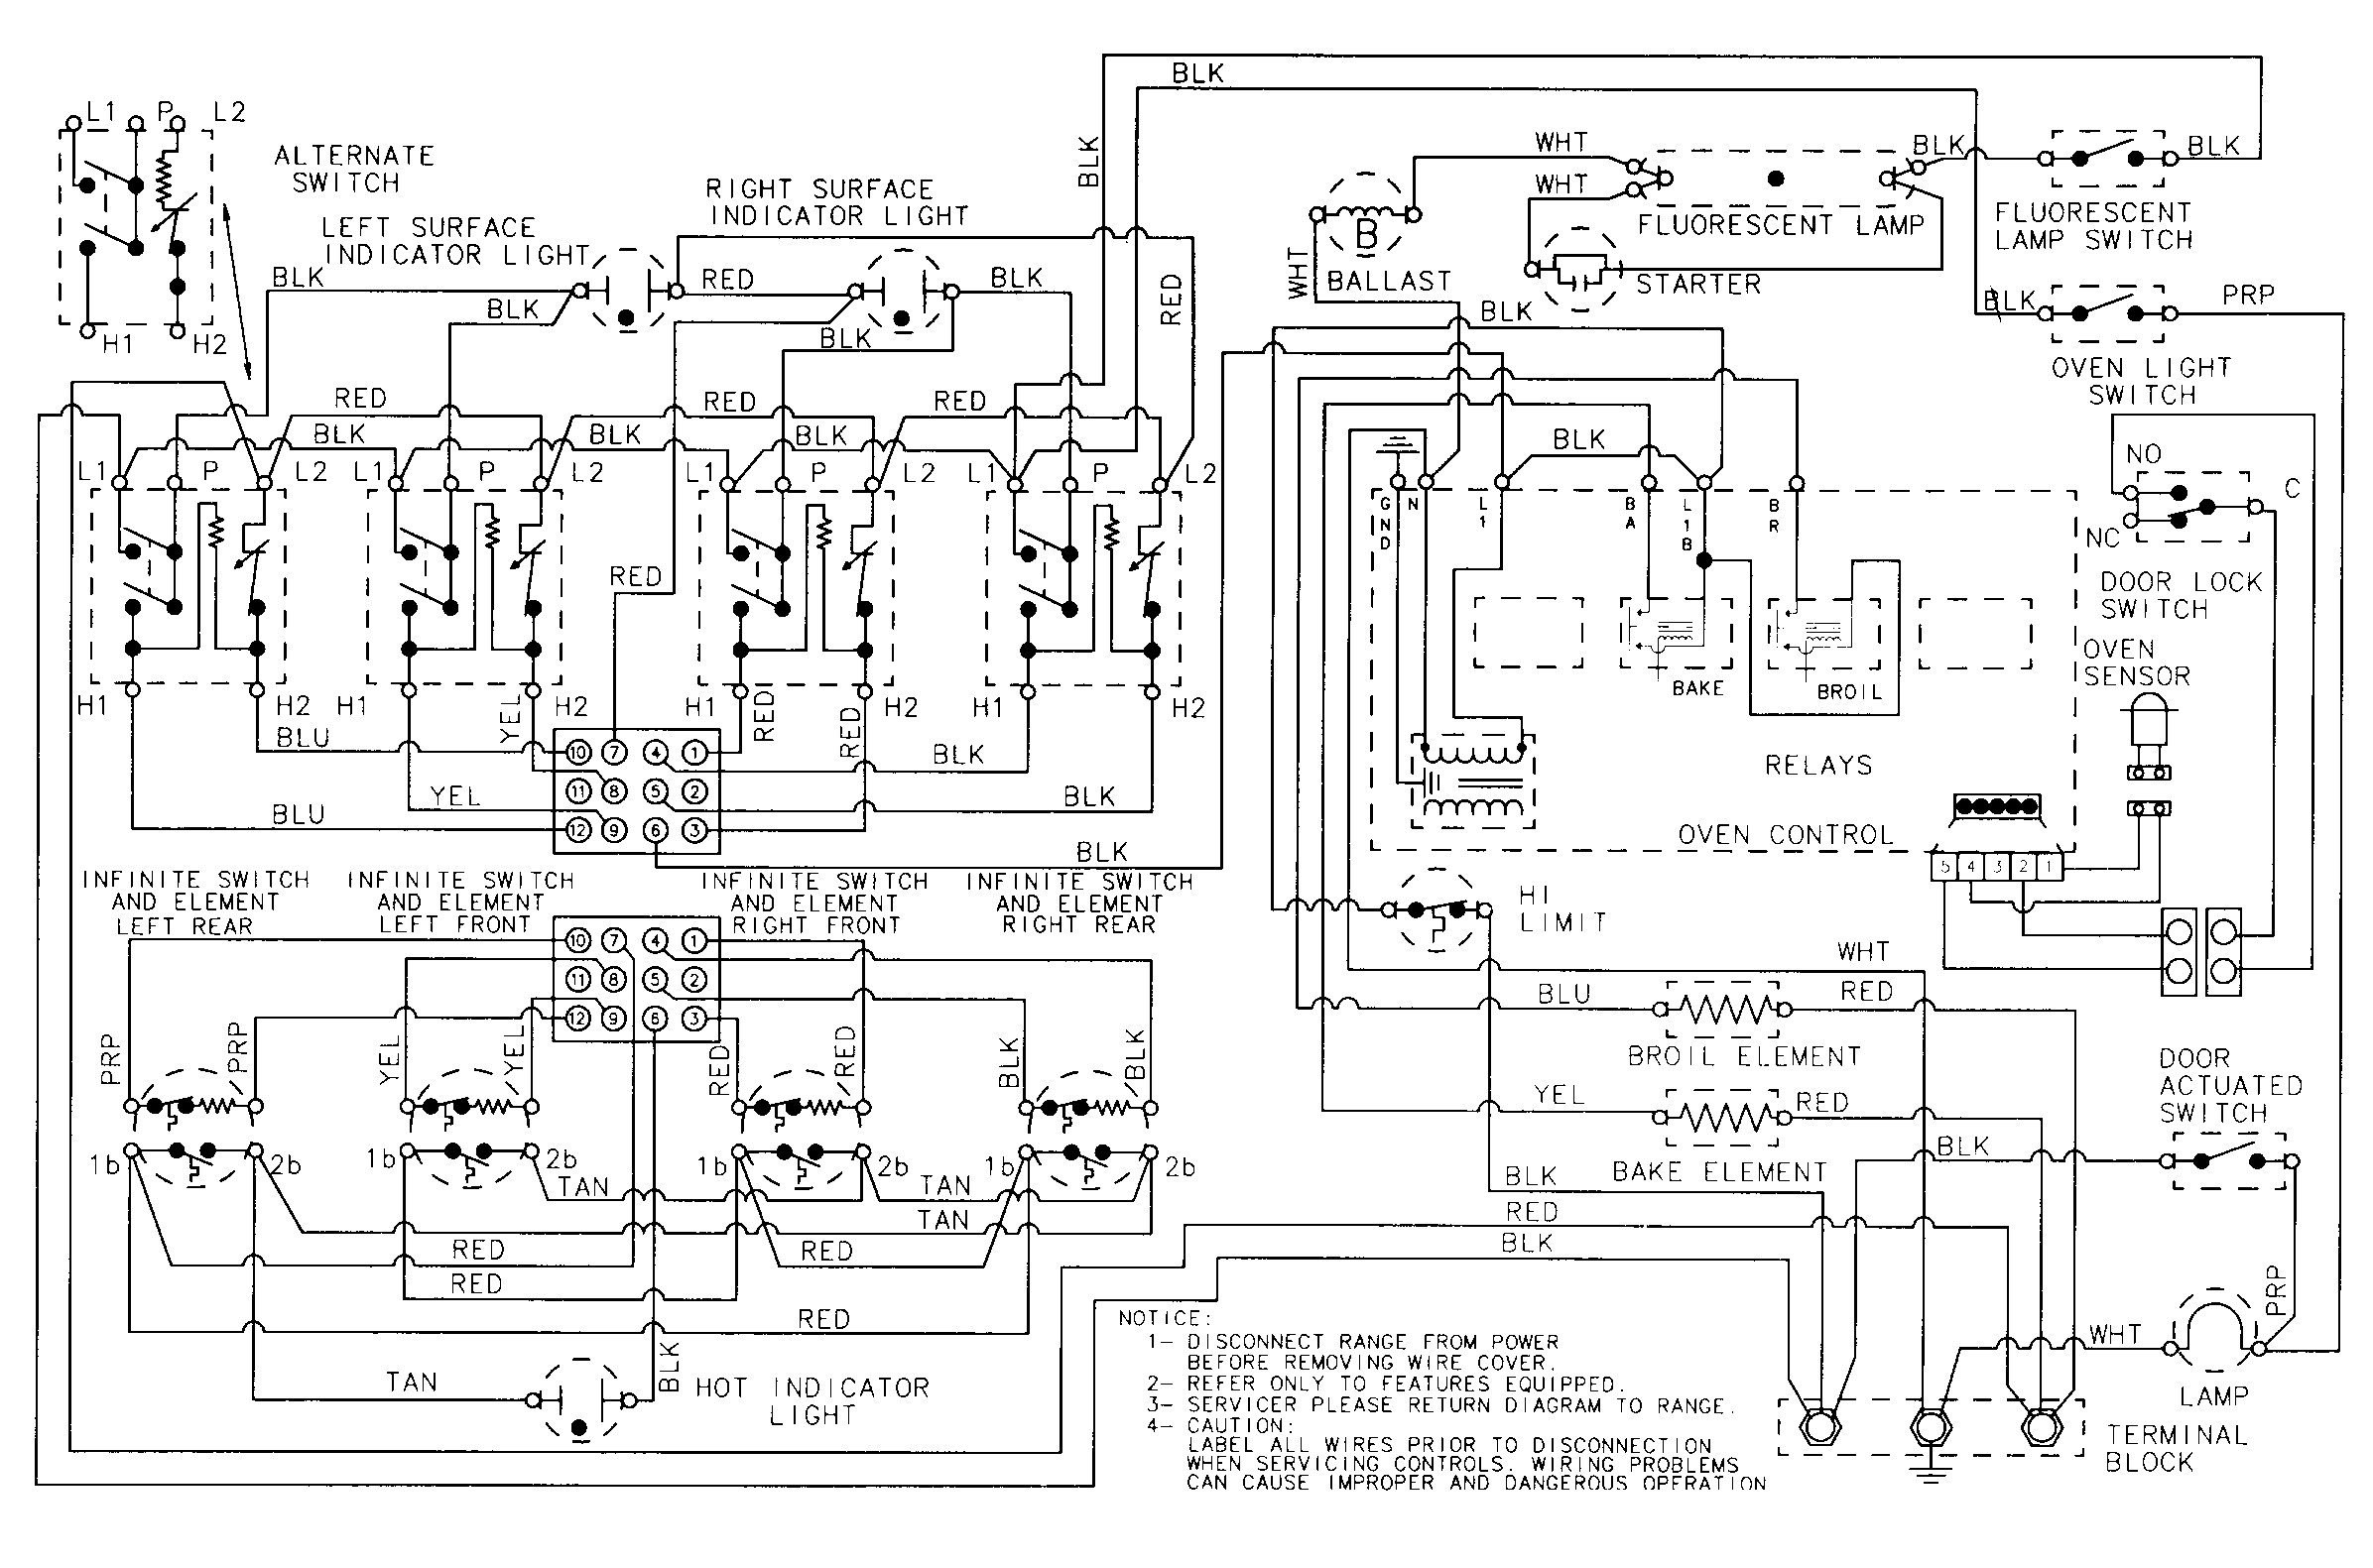 Bosch Dishwasher Wiring Diagram 2 Maytag Cre9600 Timer Stove Clocks and Appliance Timers Of Bosch Dishwasher Wiring Diagram 2